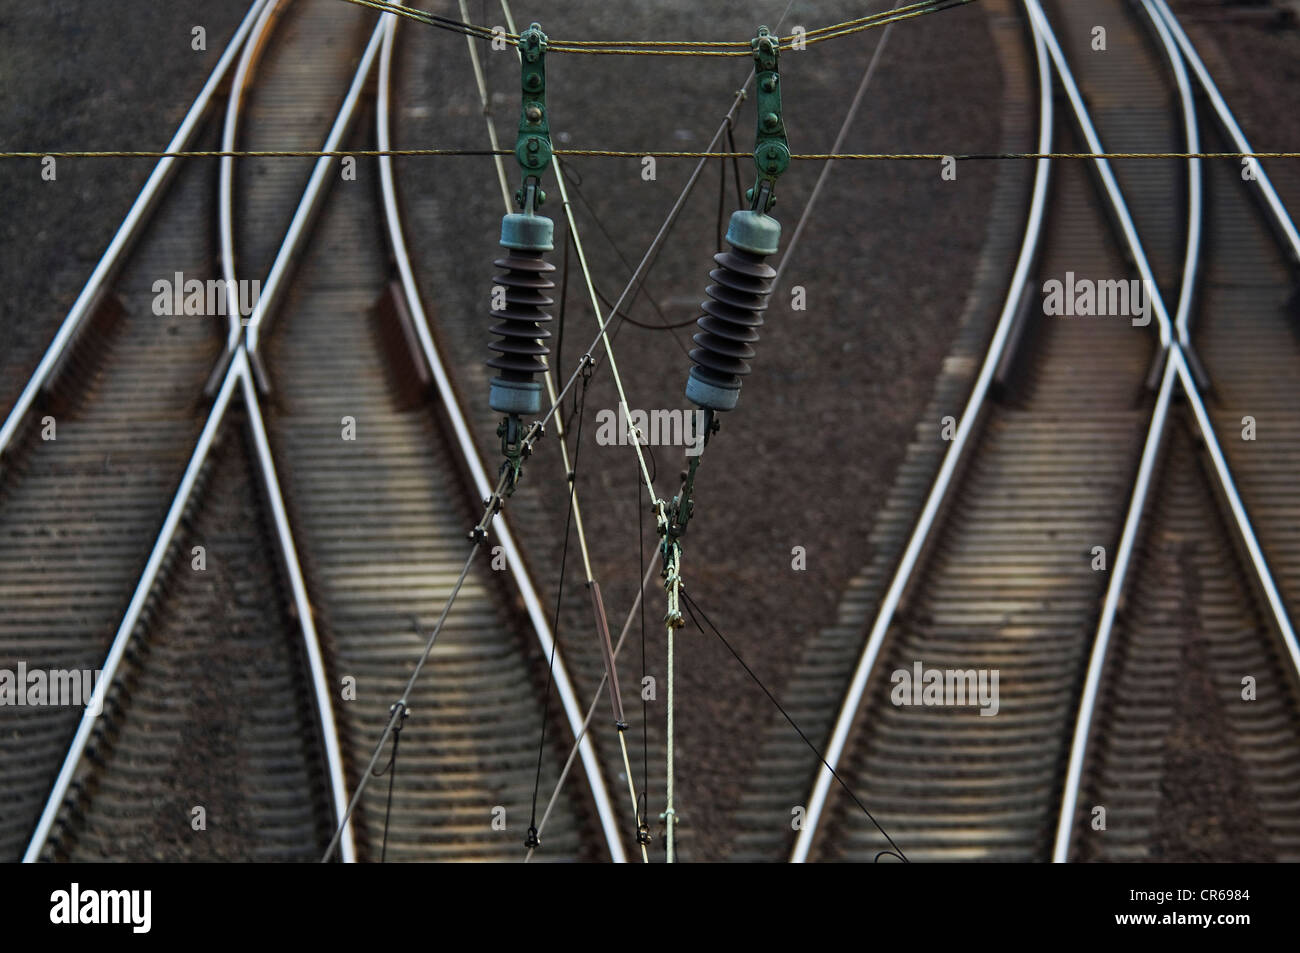 Railway tracks and overhead power lines, switches, rail traffic - Stock Image